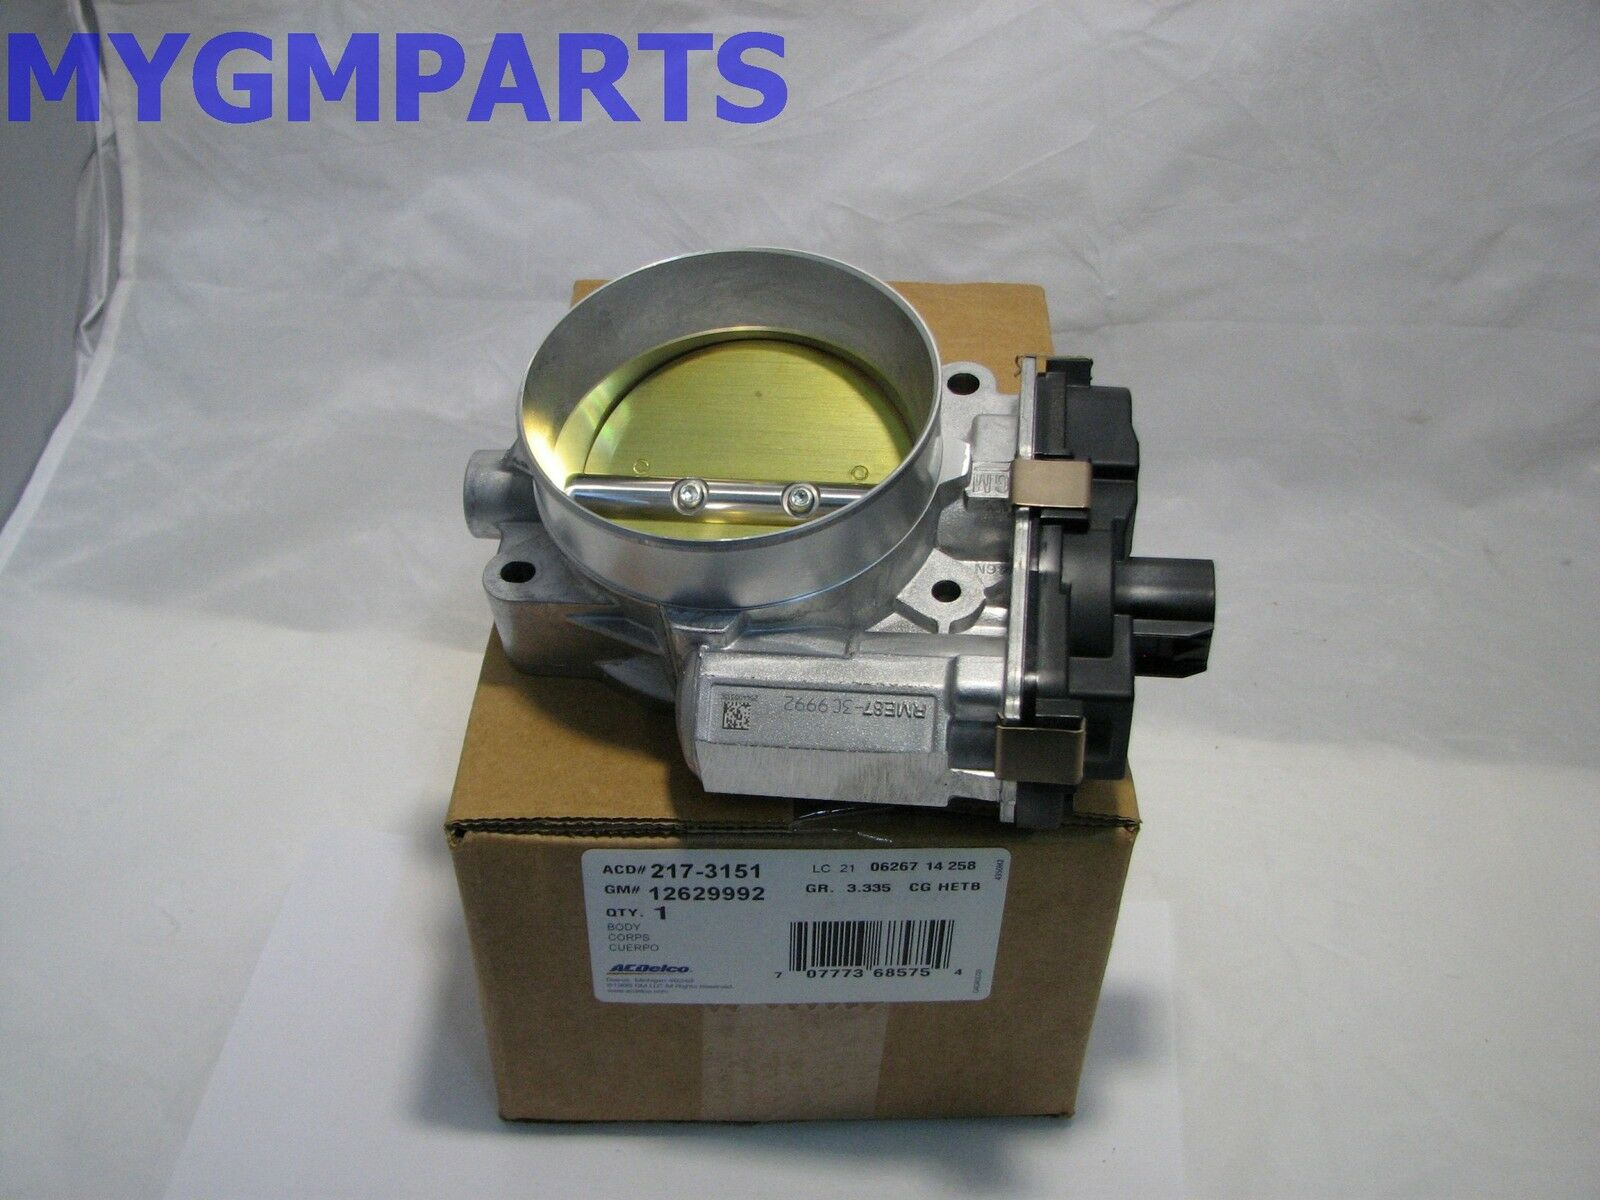 629 Lsa Fly By Wire Throttle Body New Oem Gm 12629992 21422 Gmc Sierra Position Wiring 1 Of 2only 2 Available See More